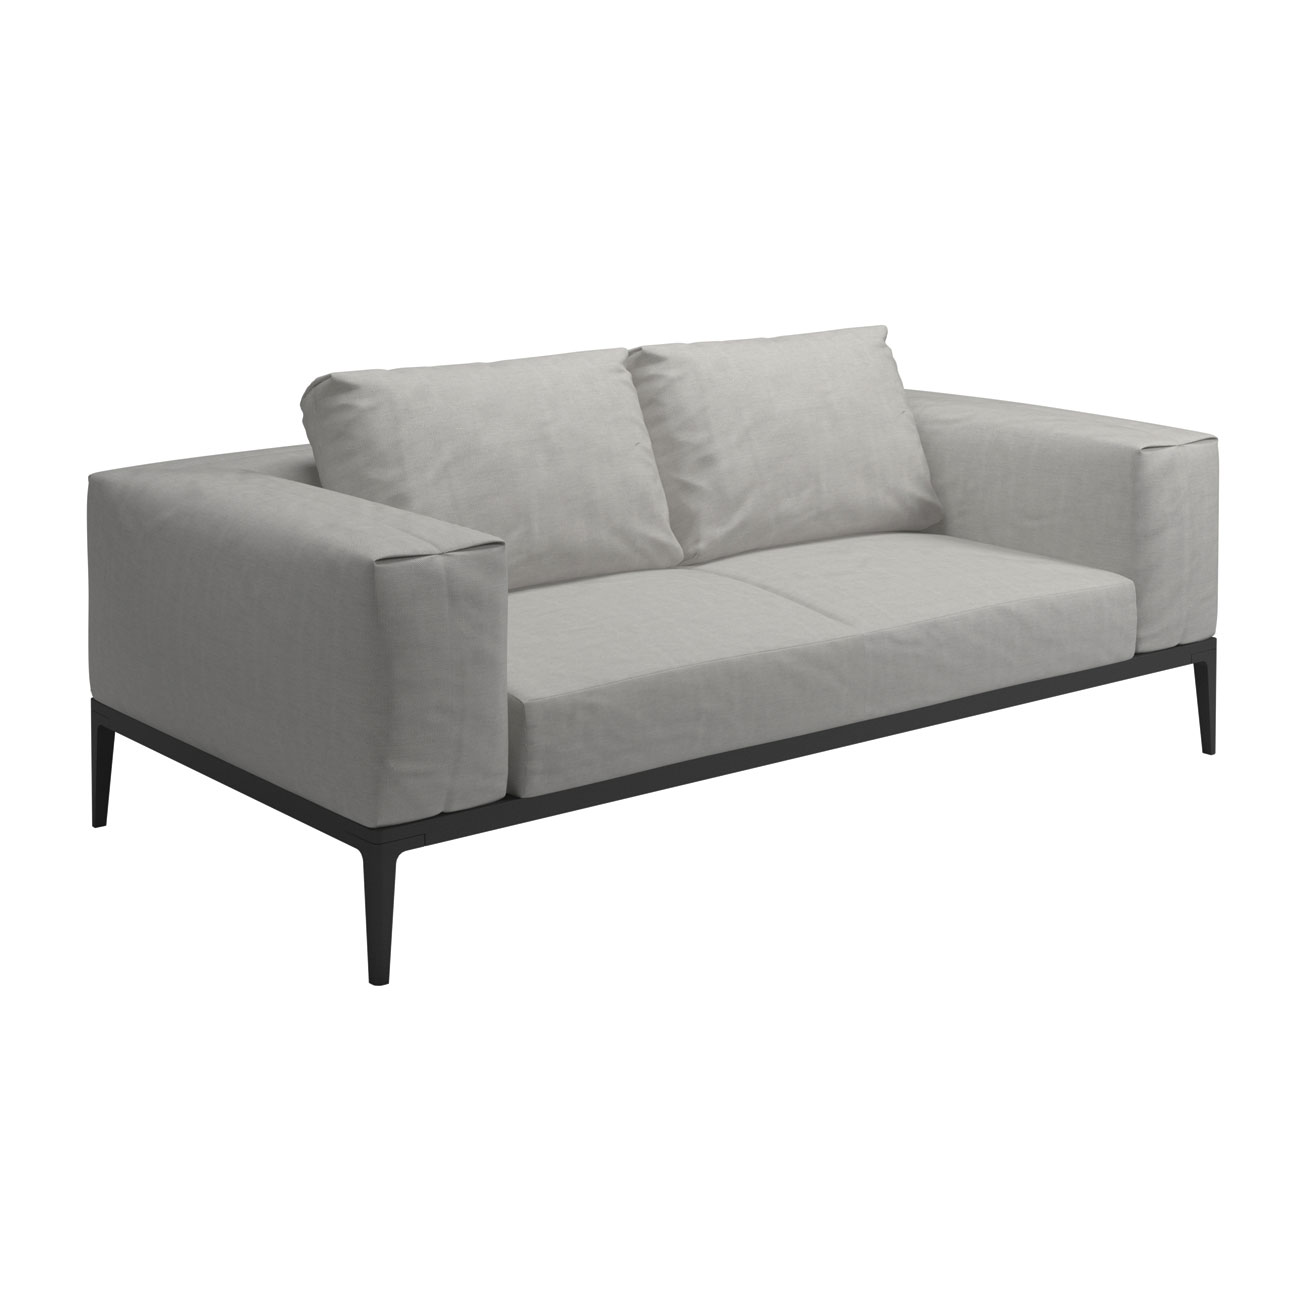 Gloster Grid Modular Sofa Sofa Unit Luxury Outdoor Living